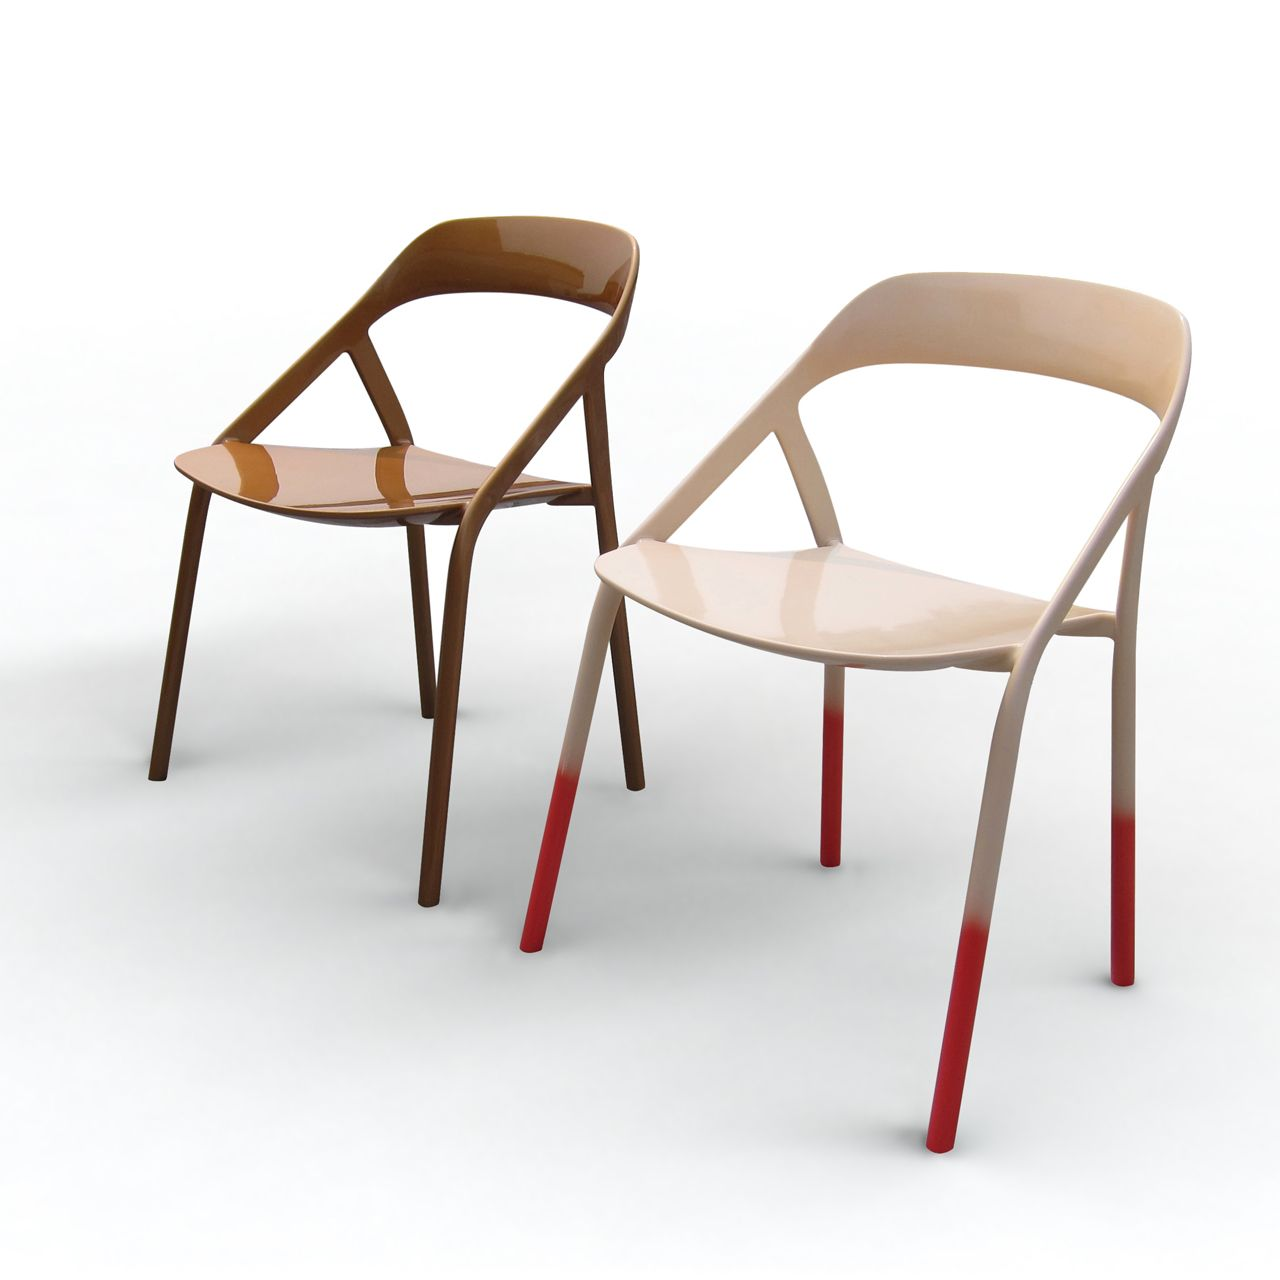 Carbon Fiber Chair  I  Design: Michael Young Producer: Coalesse